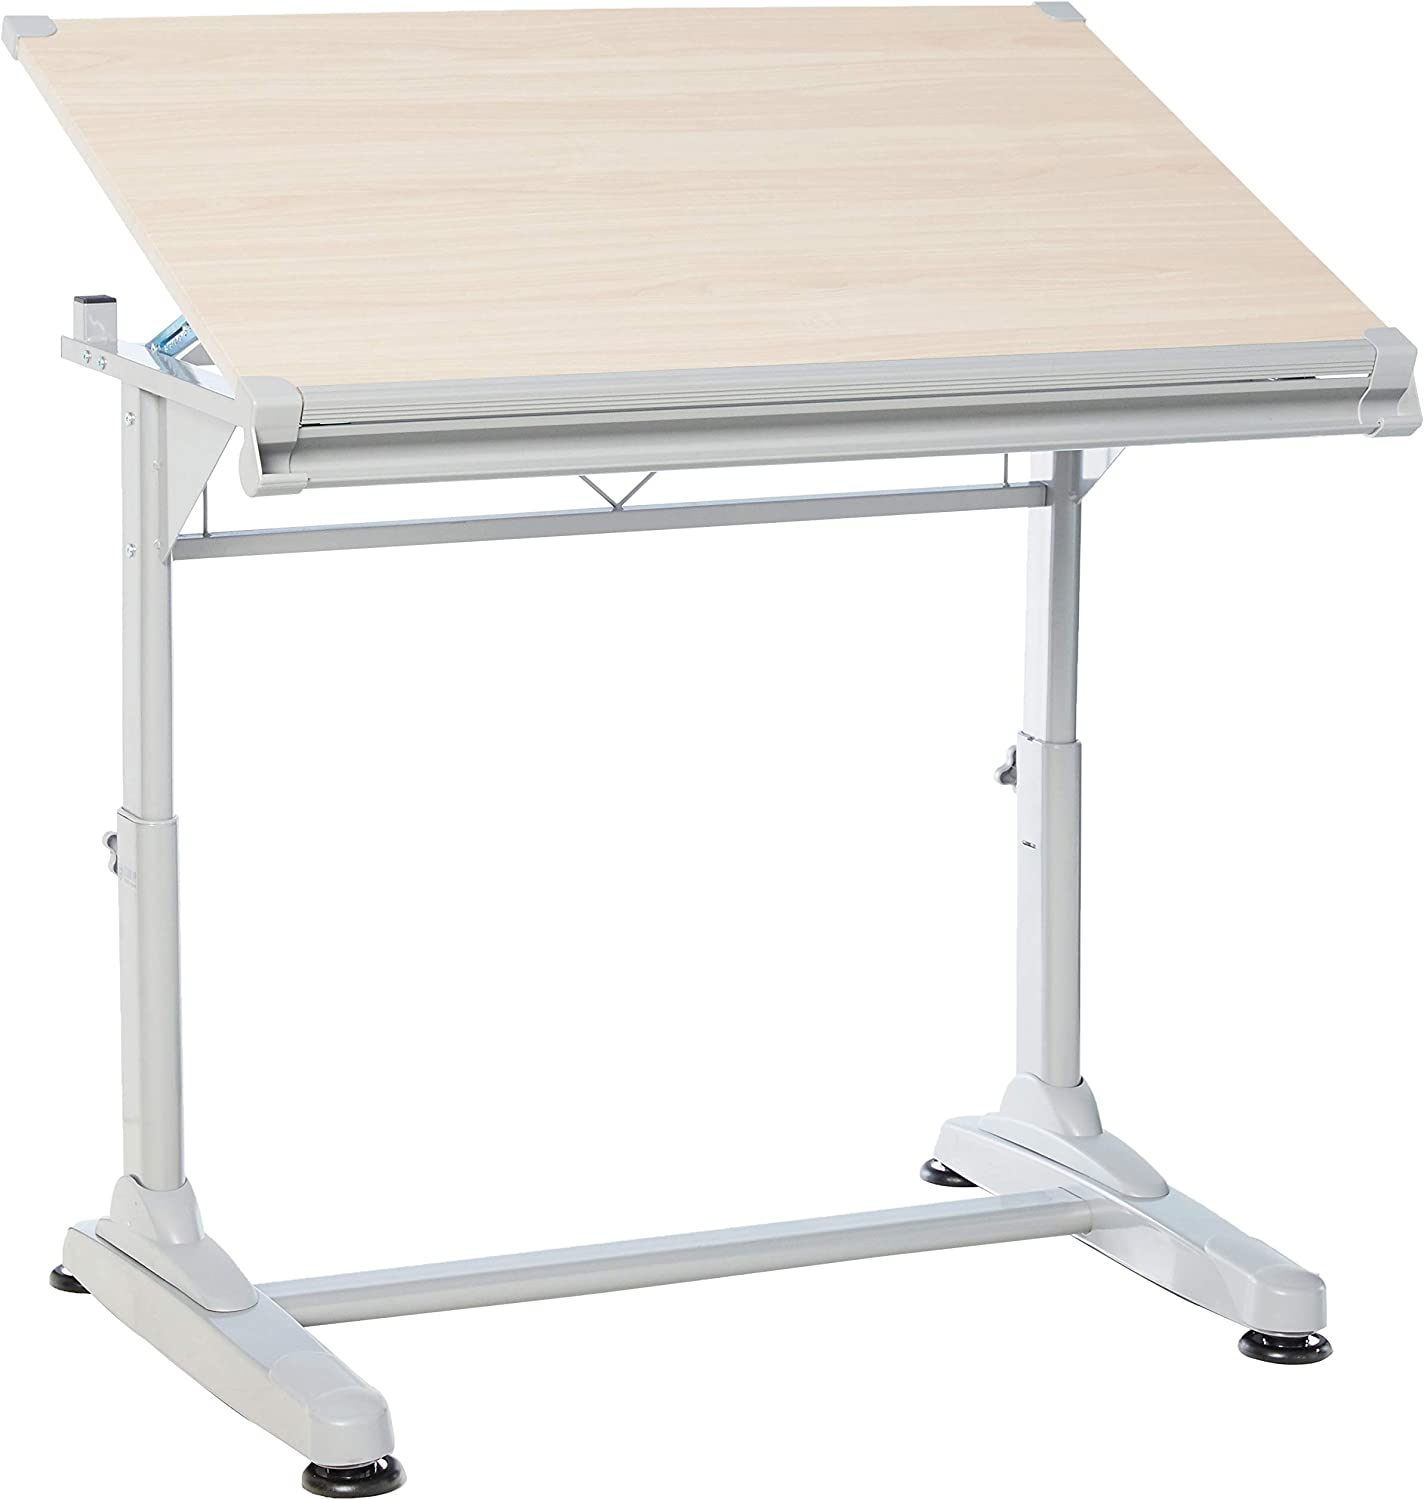 Stand Up Desk Store Adjustable Height and D Table Angle Drafting OFFicial store Ranking TOP4